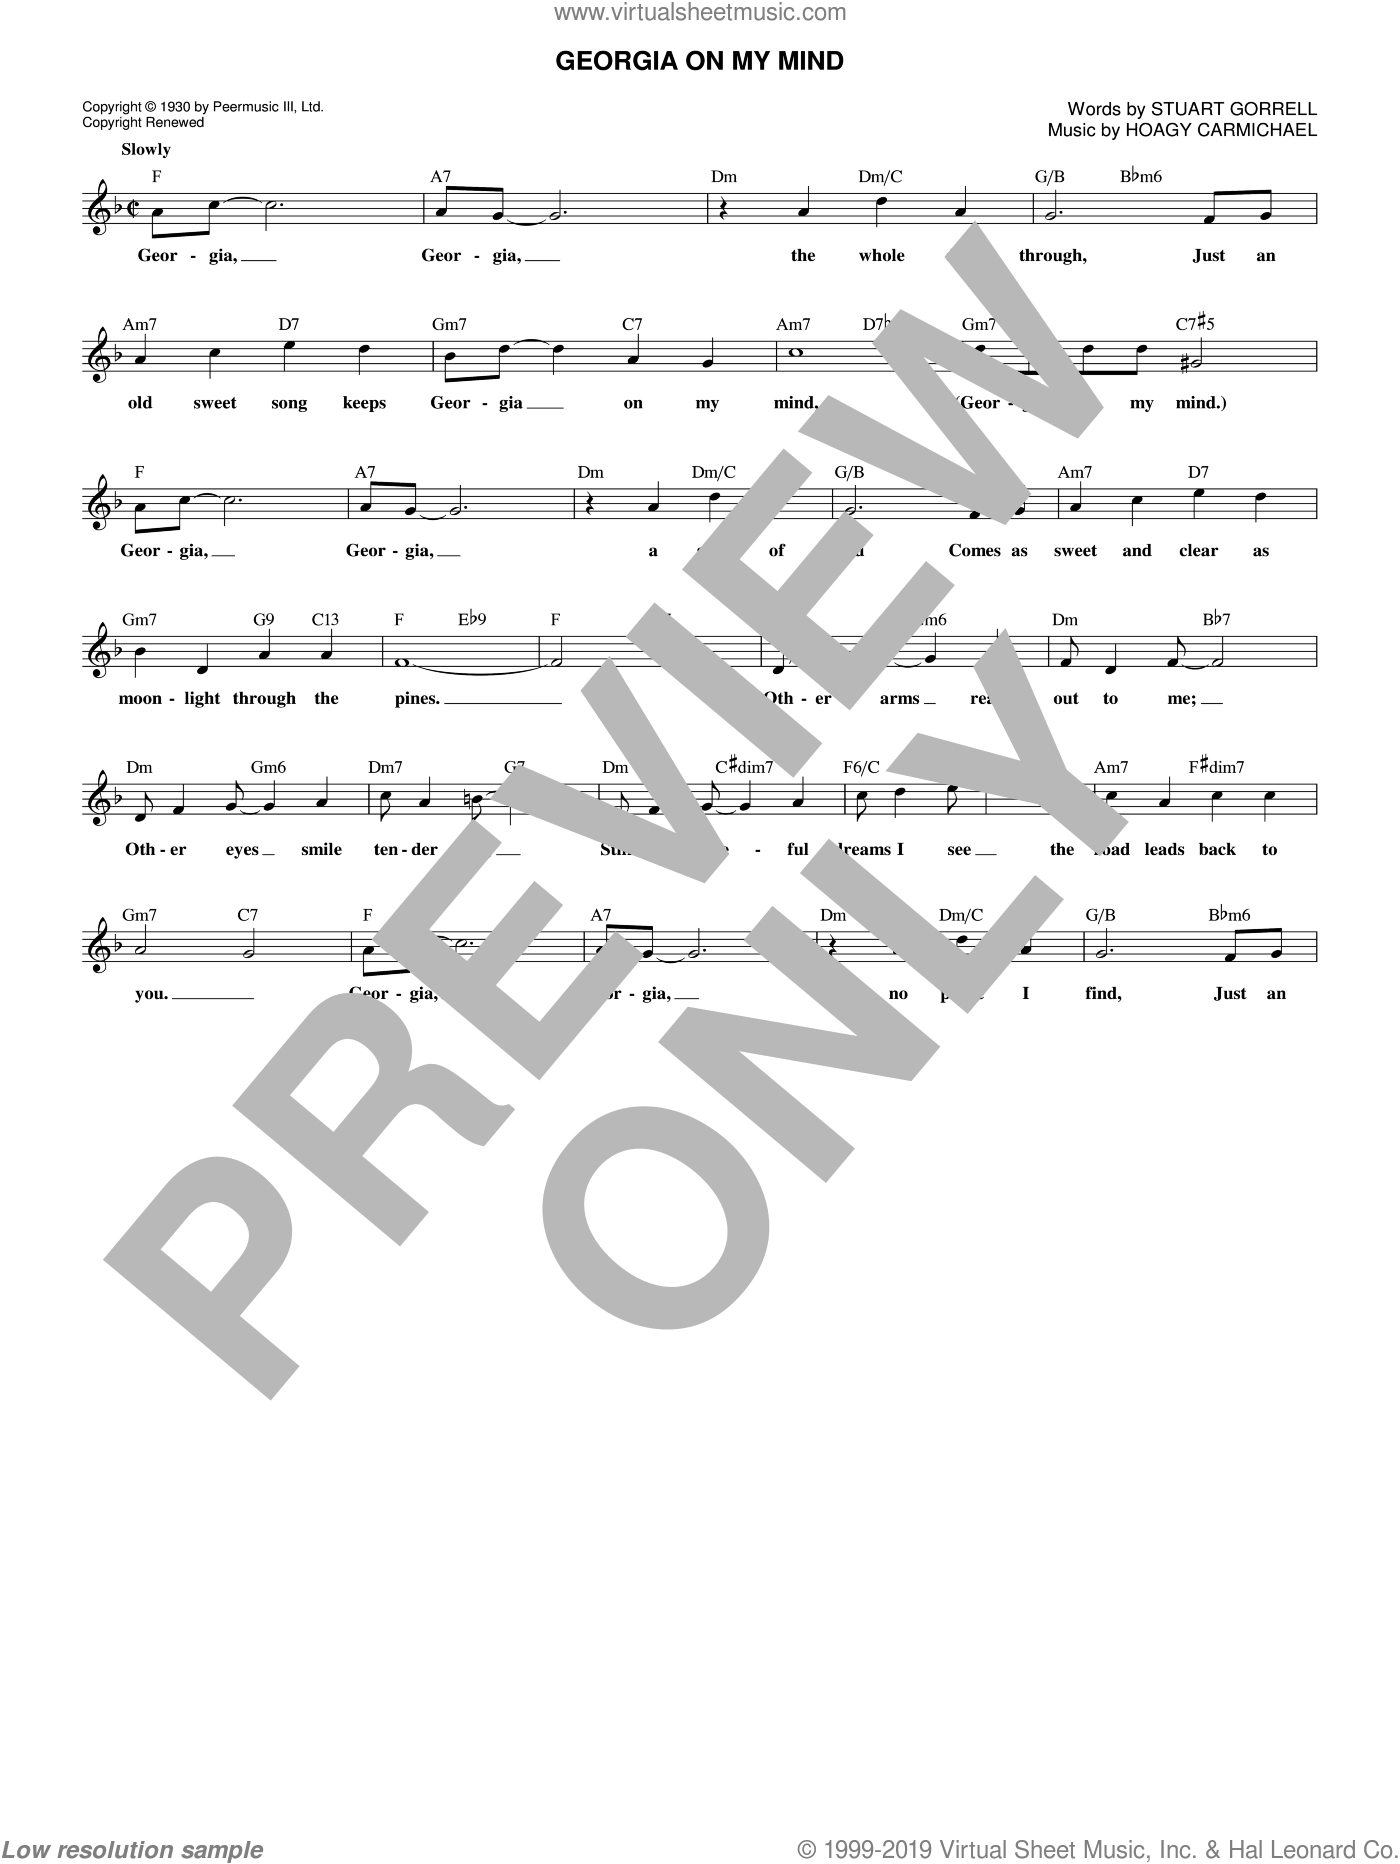 Georgia On My Mind sheet music for voice and other instruments (fake book) by Ray Charles, Willie Nelson, Hoagy Carmichael and Stuart Gorrell, intermediate skill level